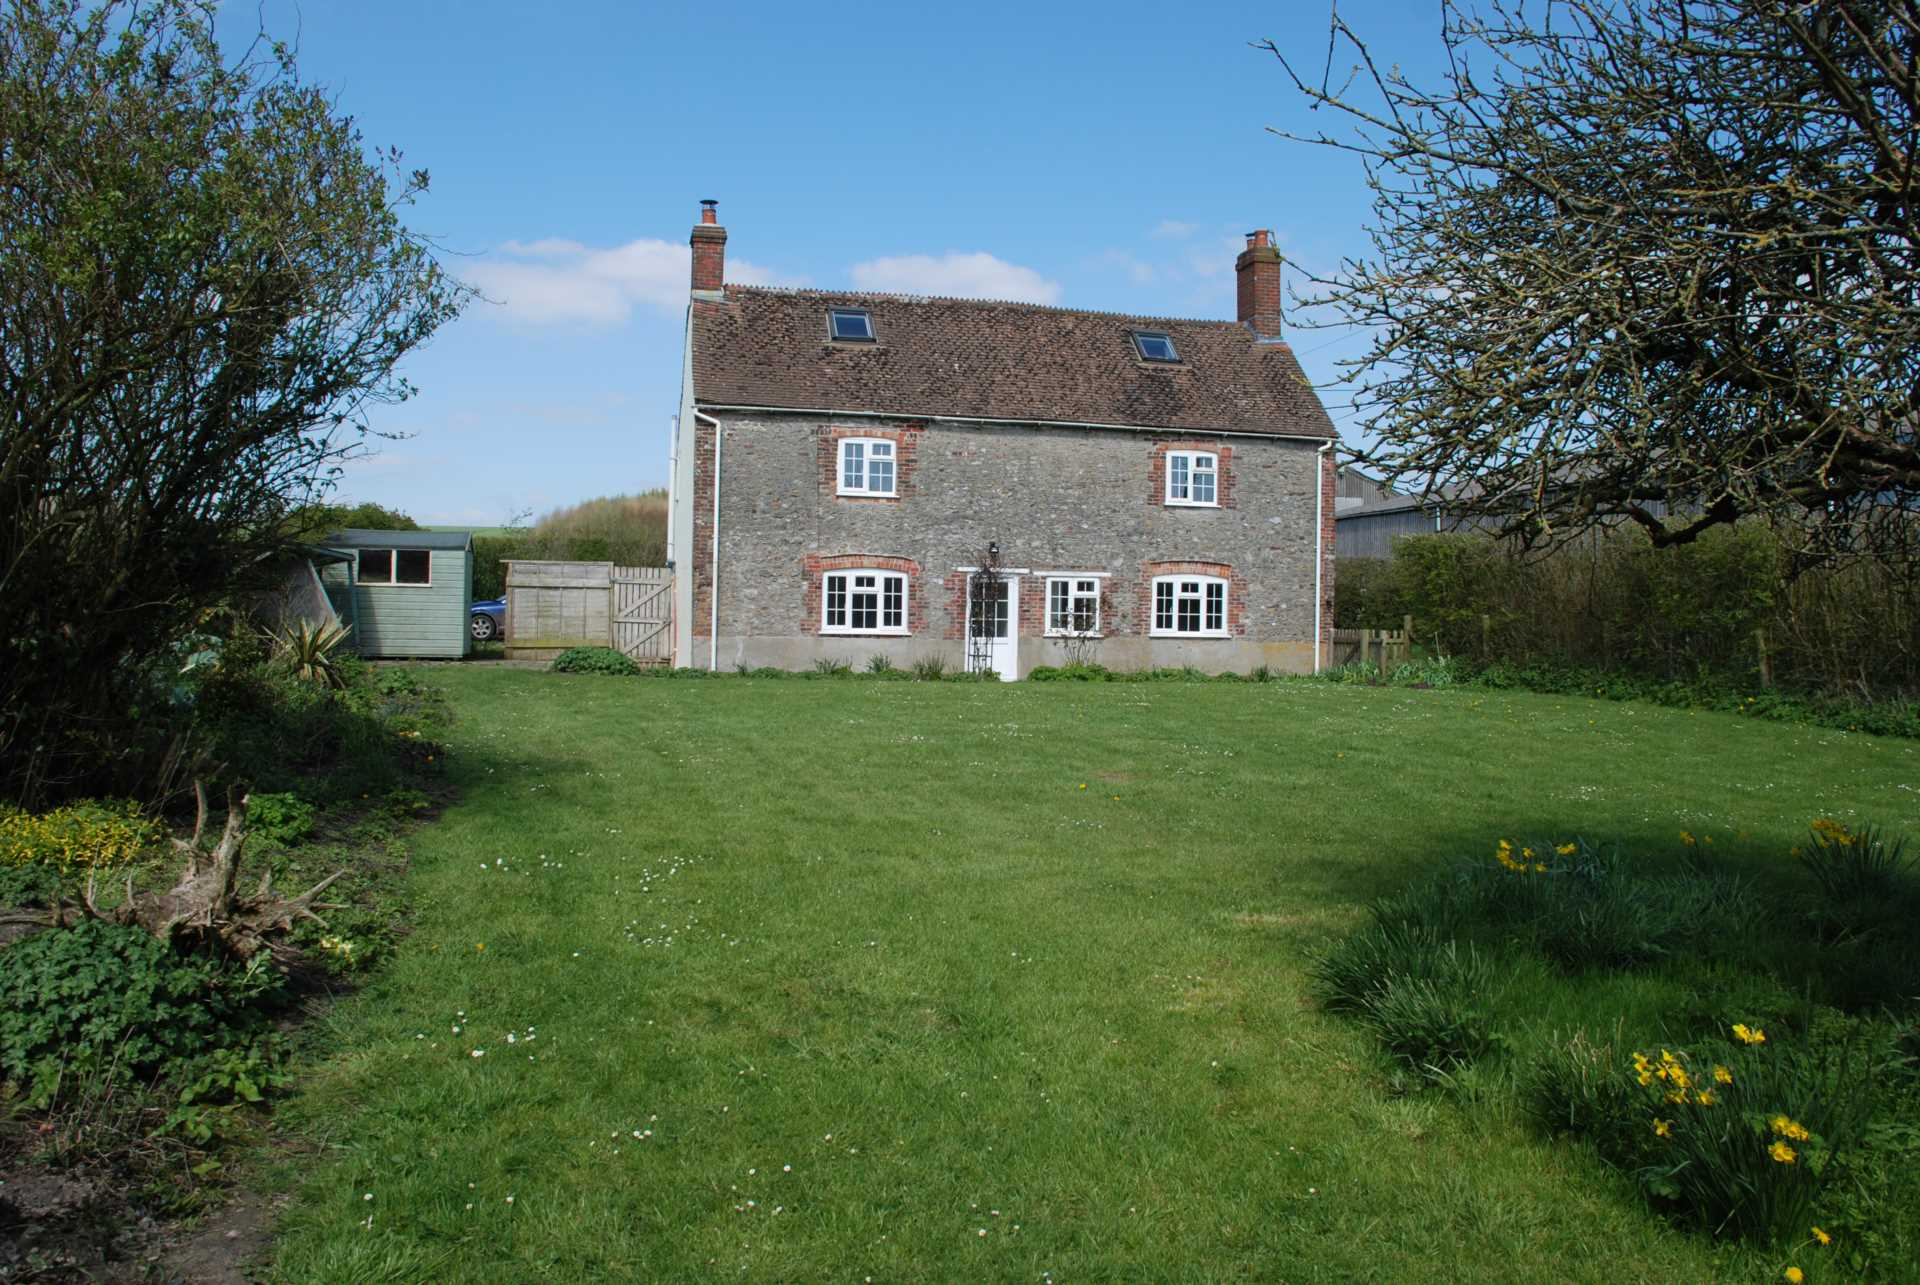 Swallows Property Letting - 3 Bedroom Detached, Maiden Bradley